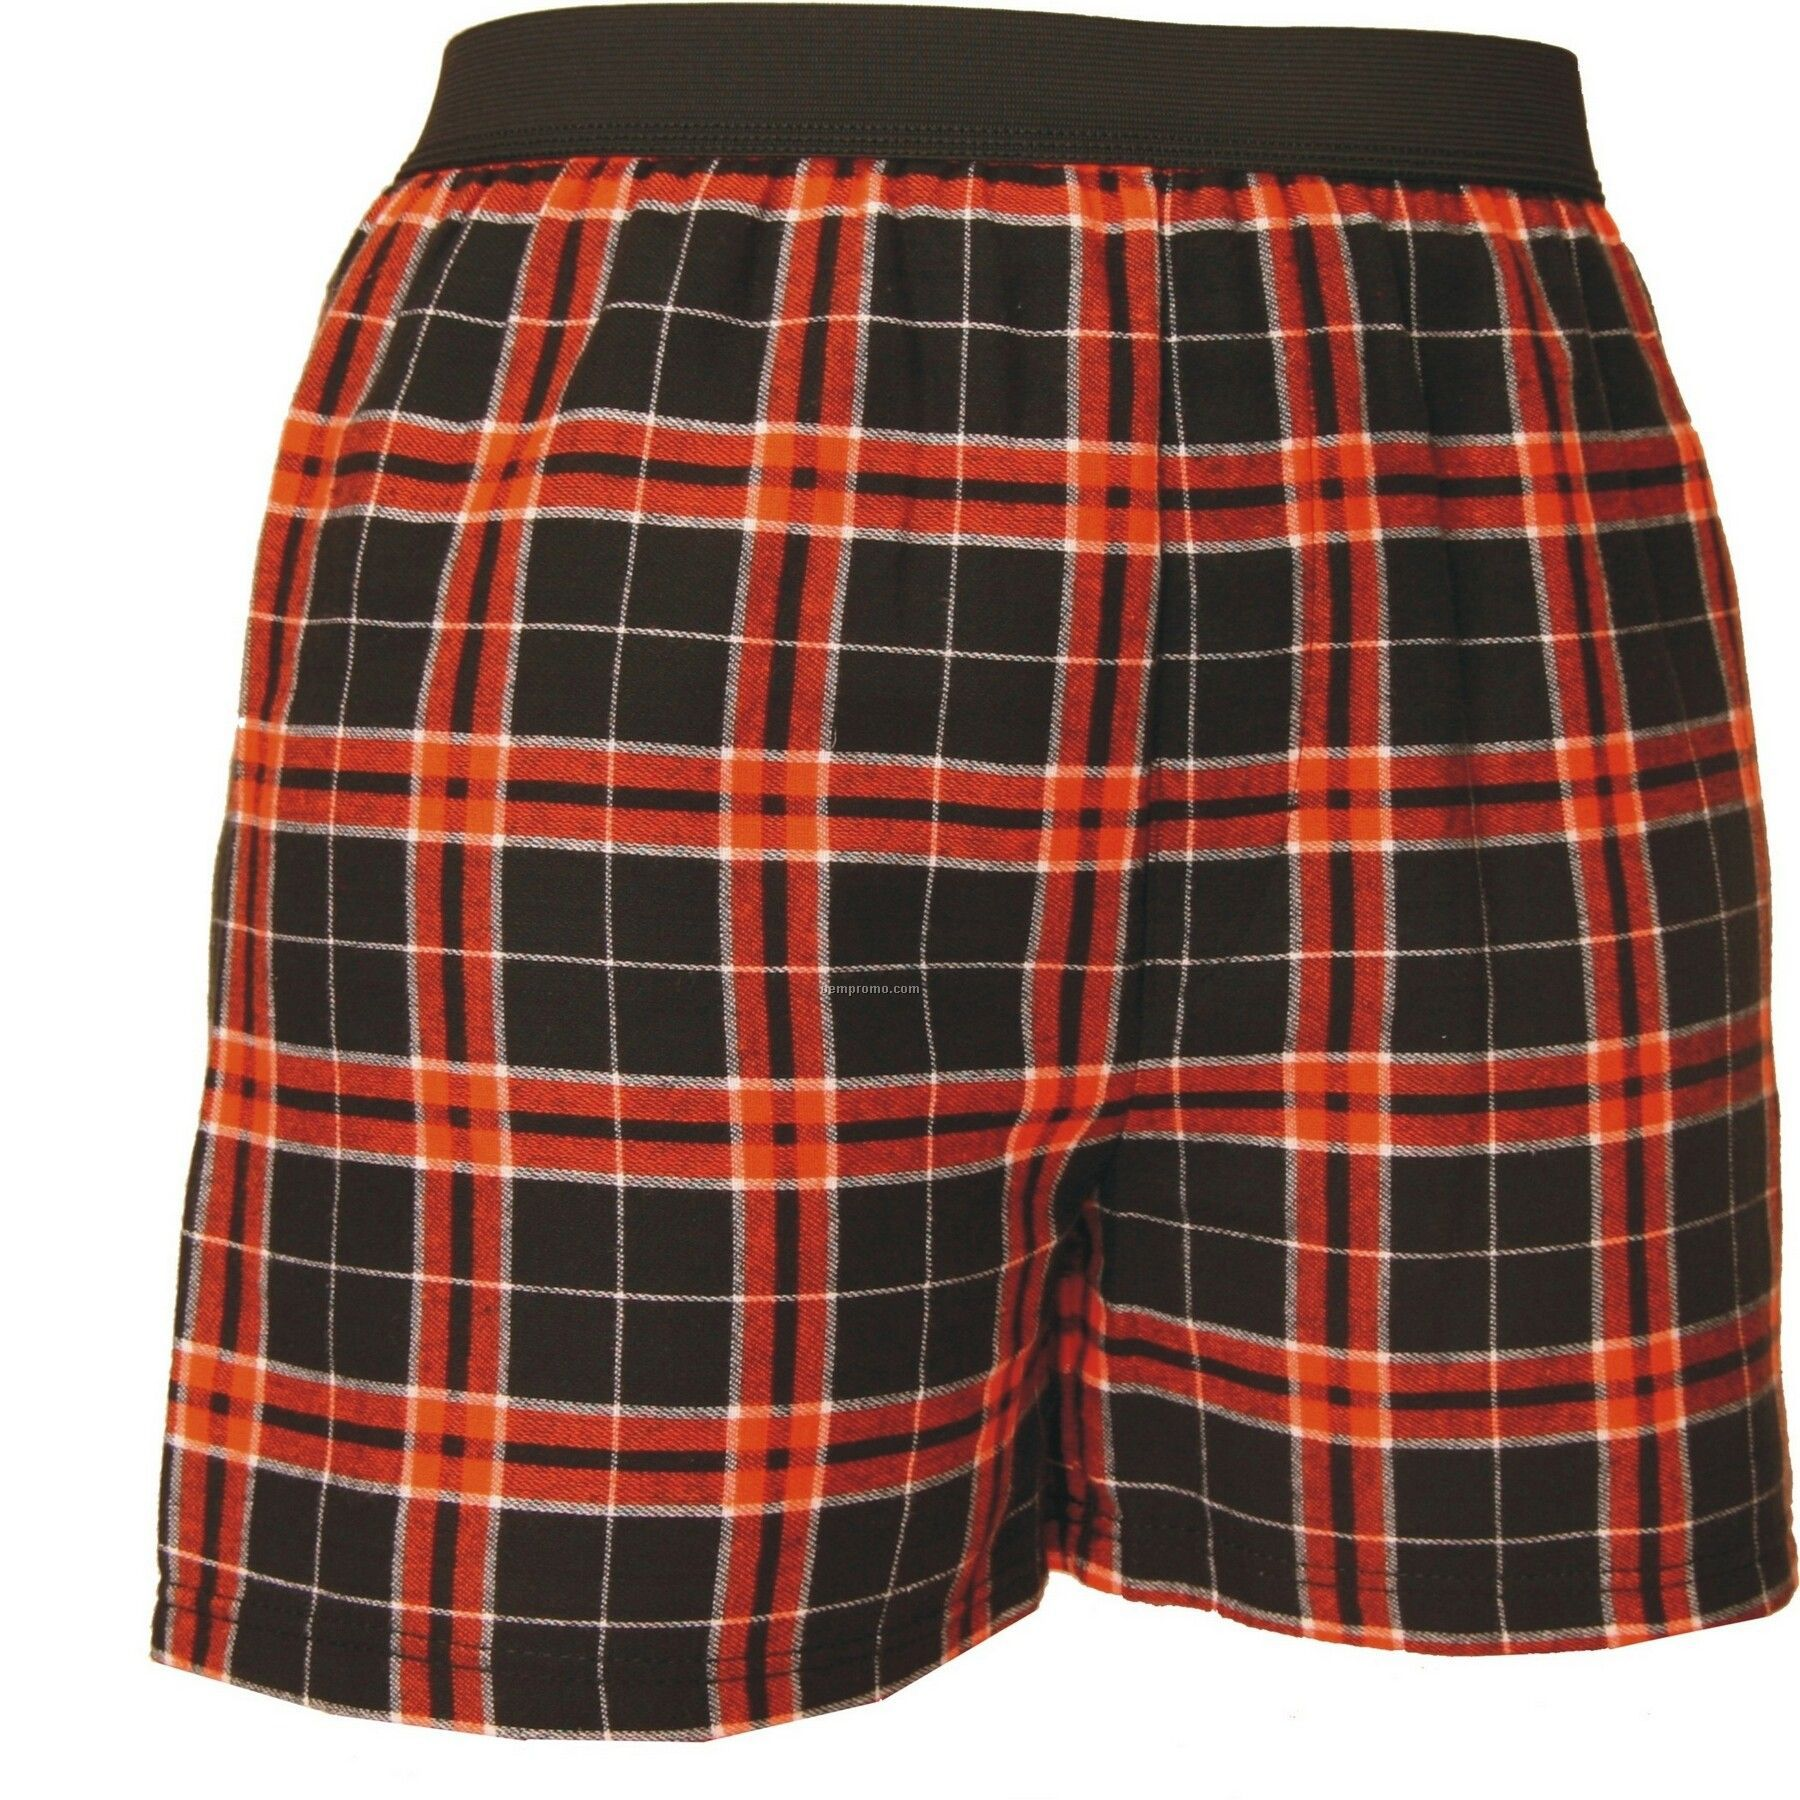 Youth Orange/Black Plaid Classic Boxer Short